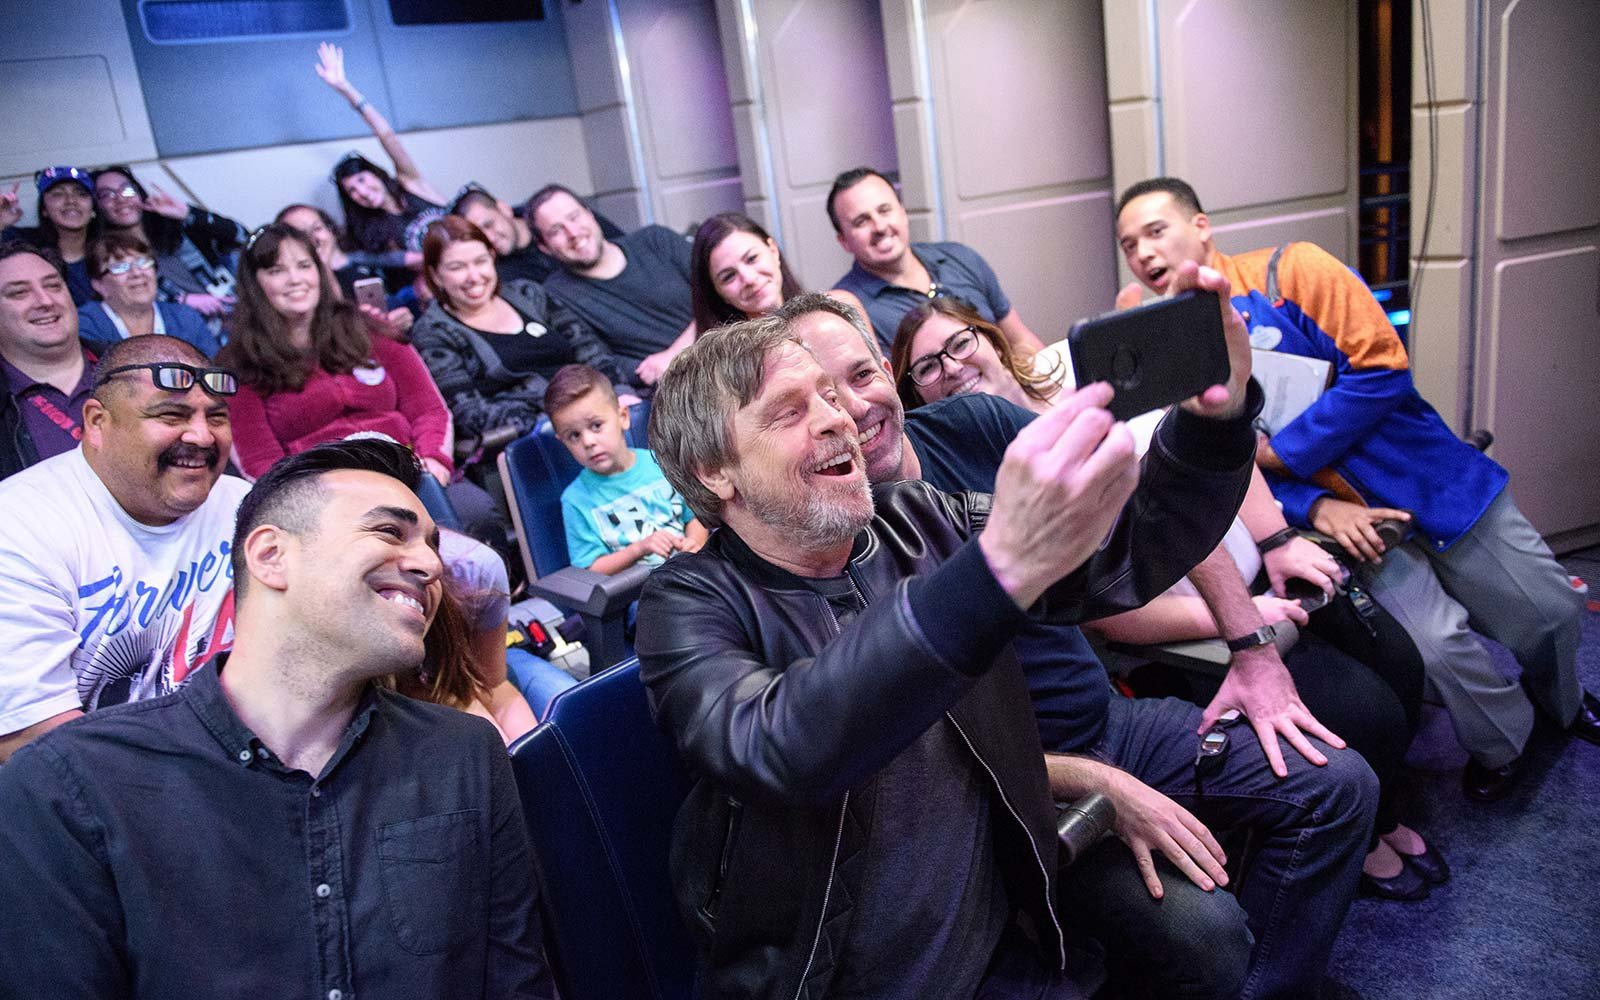 Mark Hamill Surprises Fans on 'Star Tours' at Disneyland!